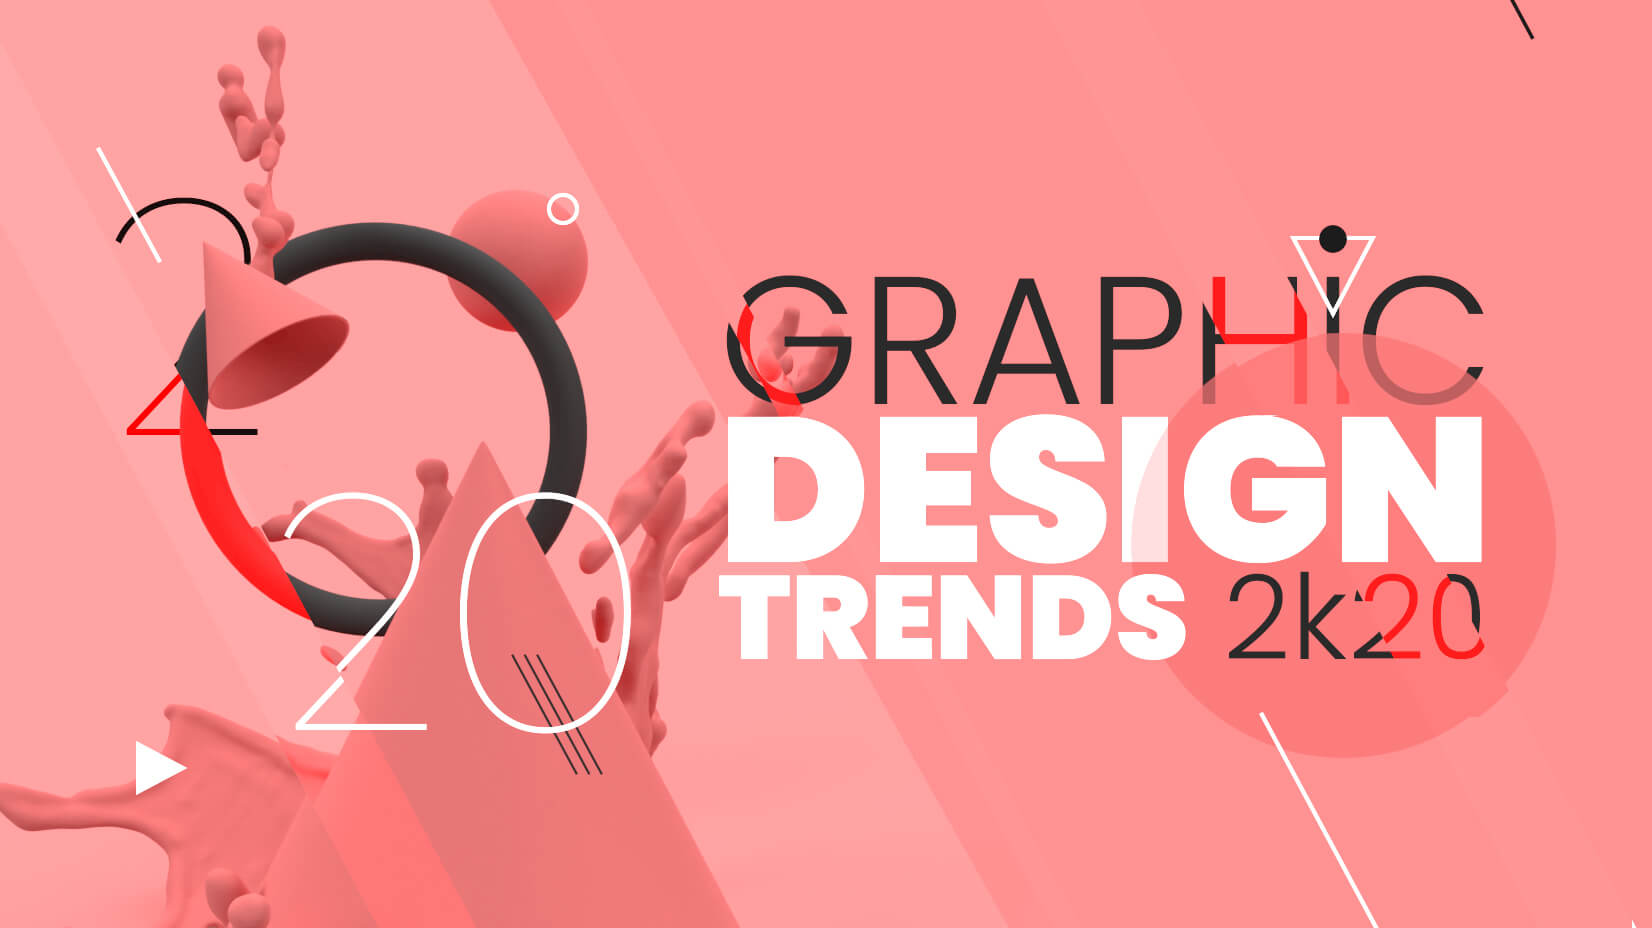 Web Design Trends 2020.Graphic Design Trends 2020 Breaking The Rules Graphicmama